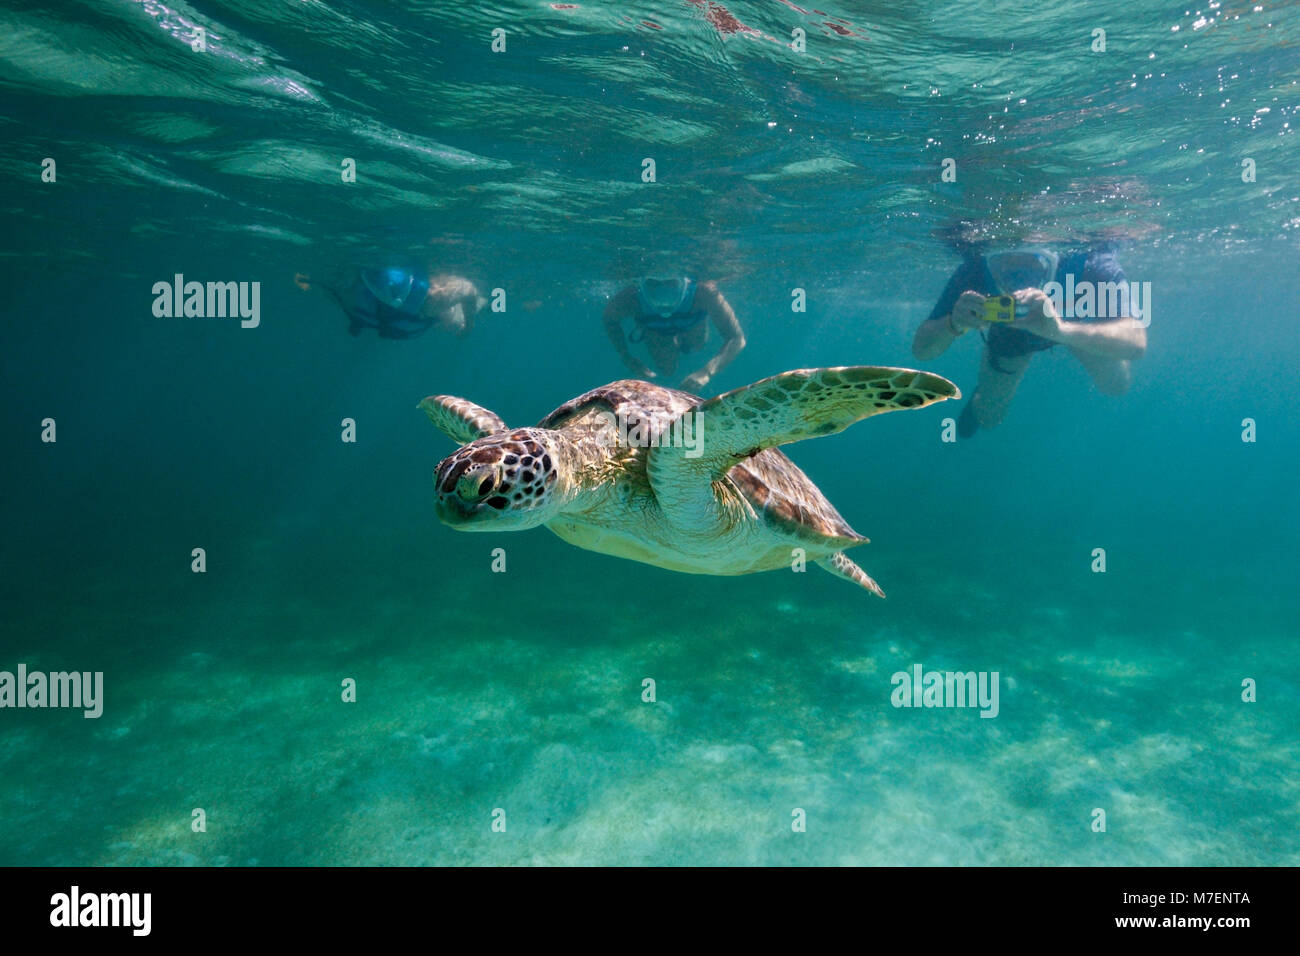 Les plongeurs en regardant Tortue verte, Chelonia mydas, Akumal, Tulum, Mexique Photo Stock